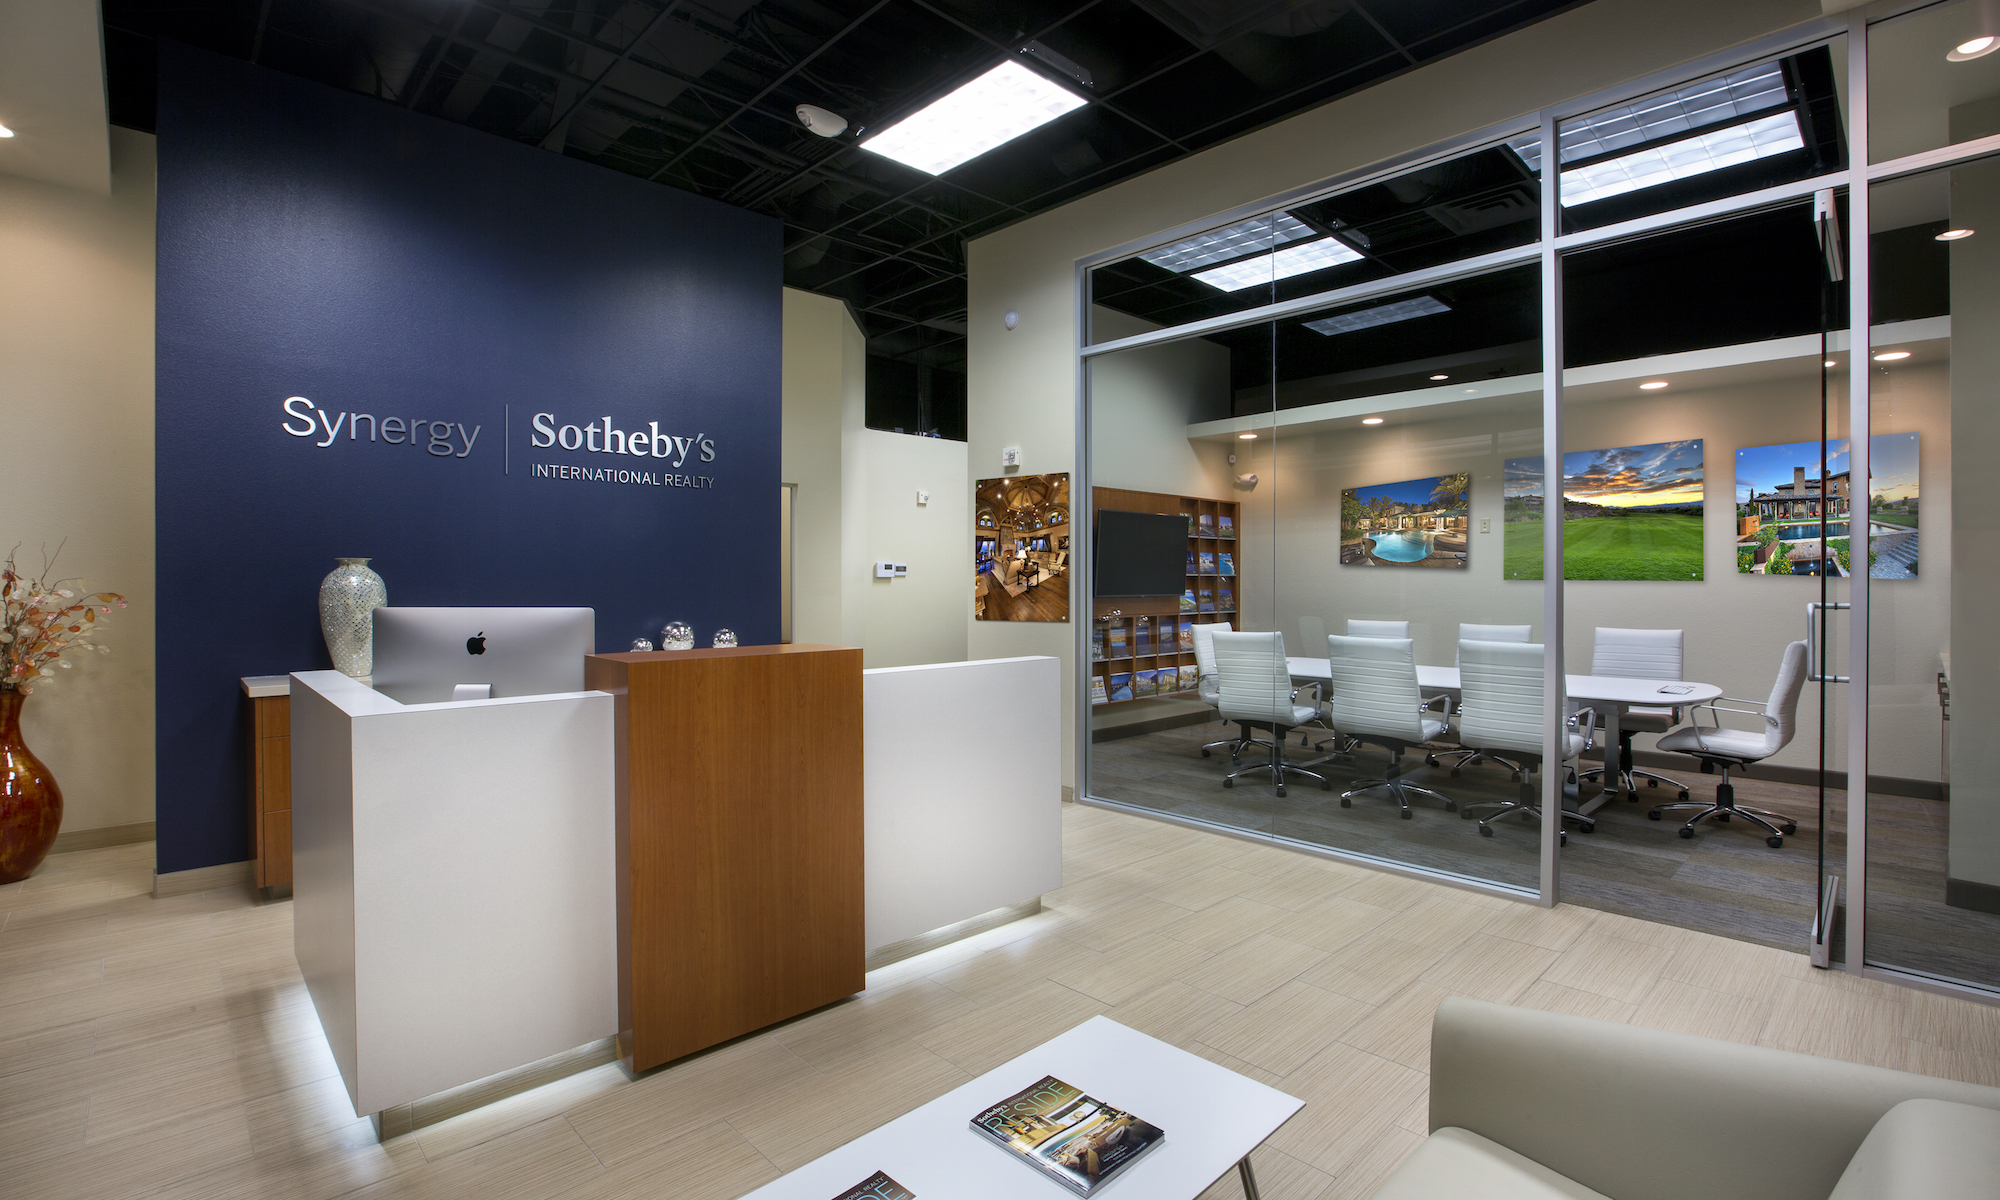 Synergy Sotheby's International Realty